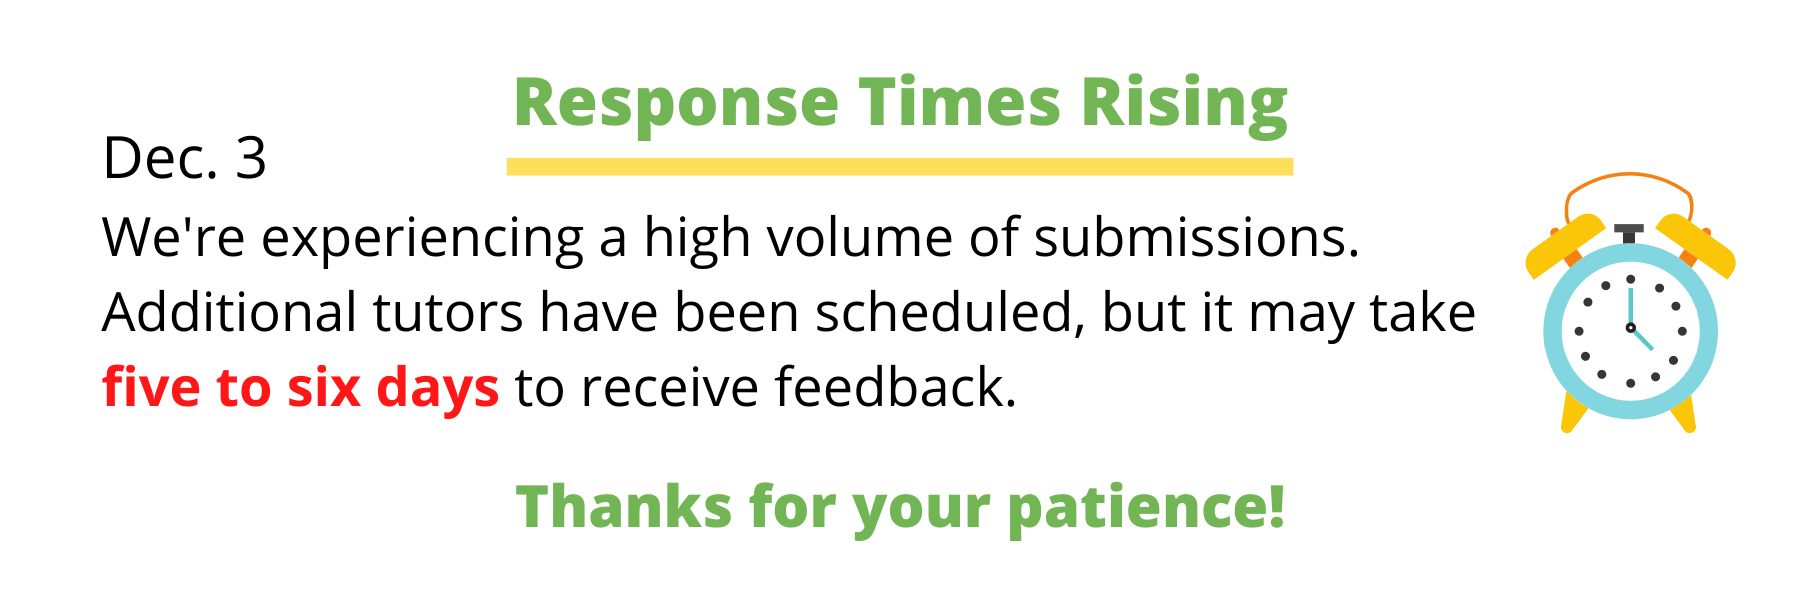 Increased response times - we're experiencing a high volume of submissions. At this time it may take three days to receive feedback. Thanks for your patience.